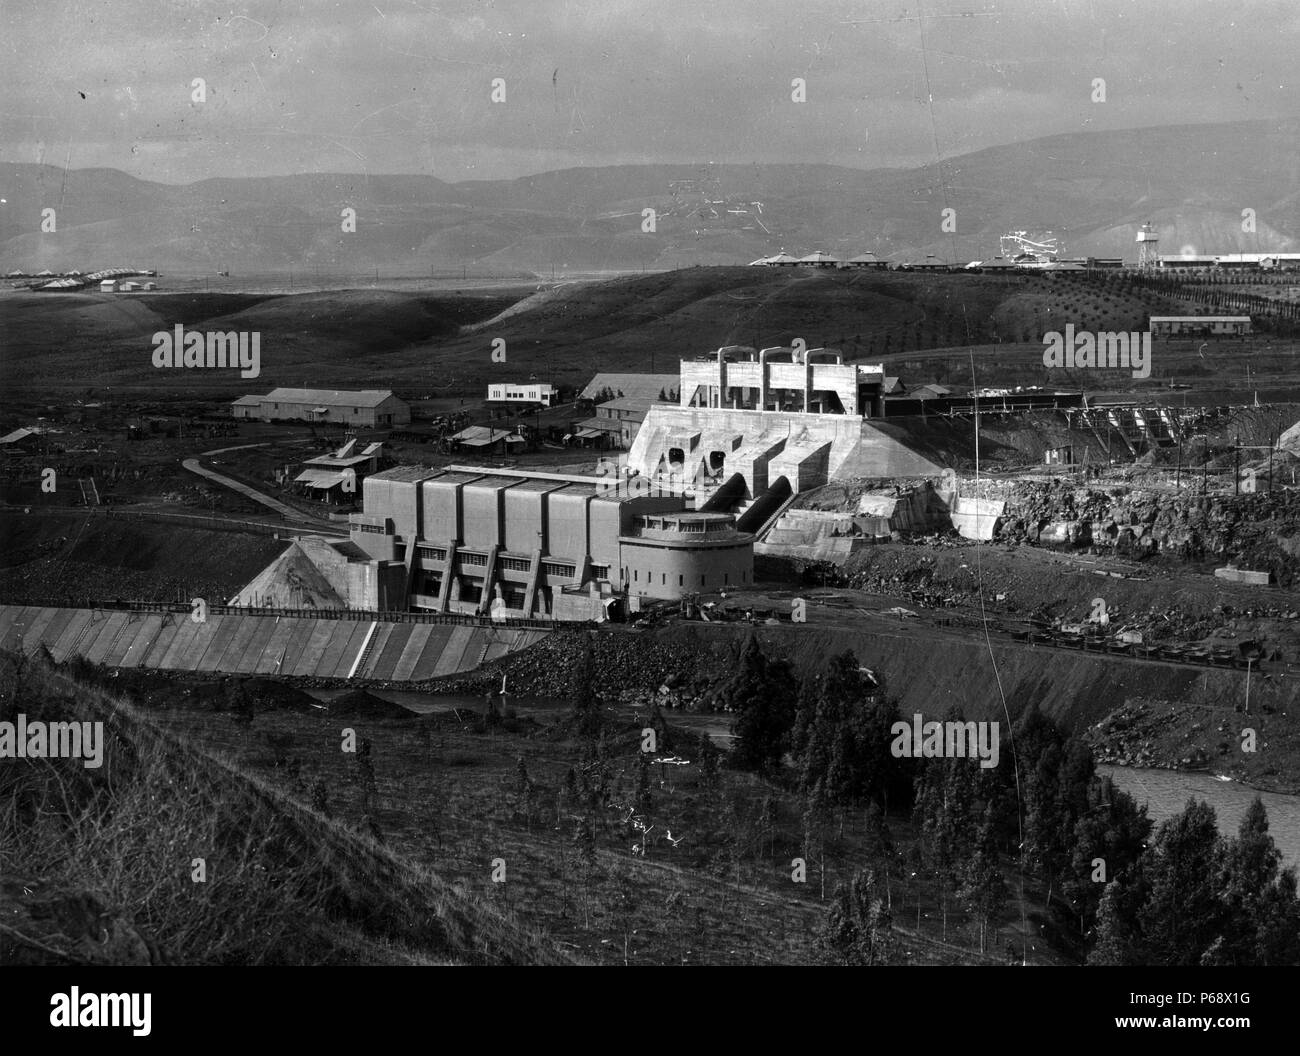 The Palestine Electric Corporation was founded by Pinhas Rutenberg in 1923. After he experienced some difficulty in launching his project he managed to secure support from the then Colonial Secretary Winston Churchill. - Stock Image